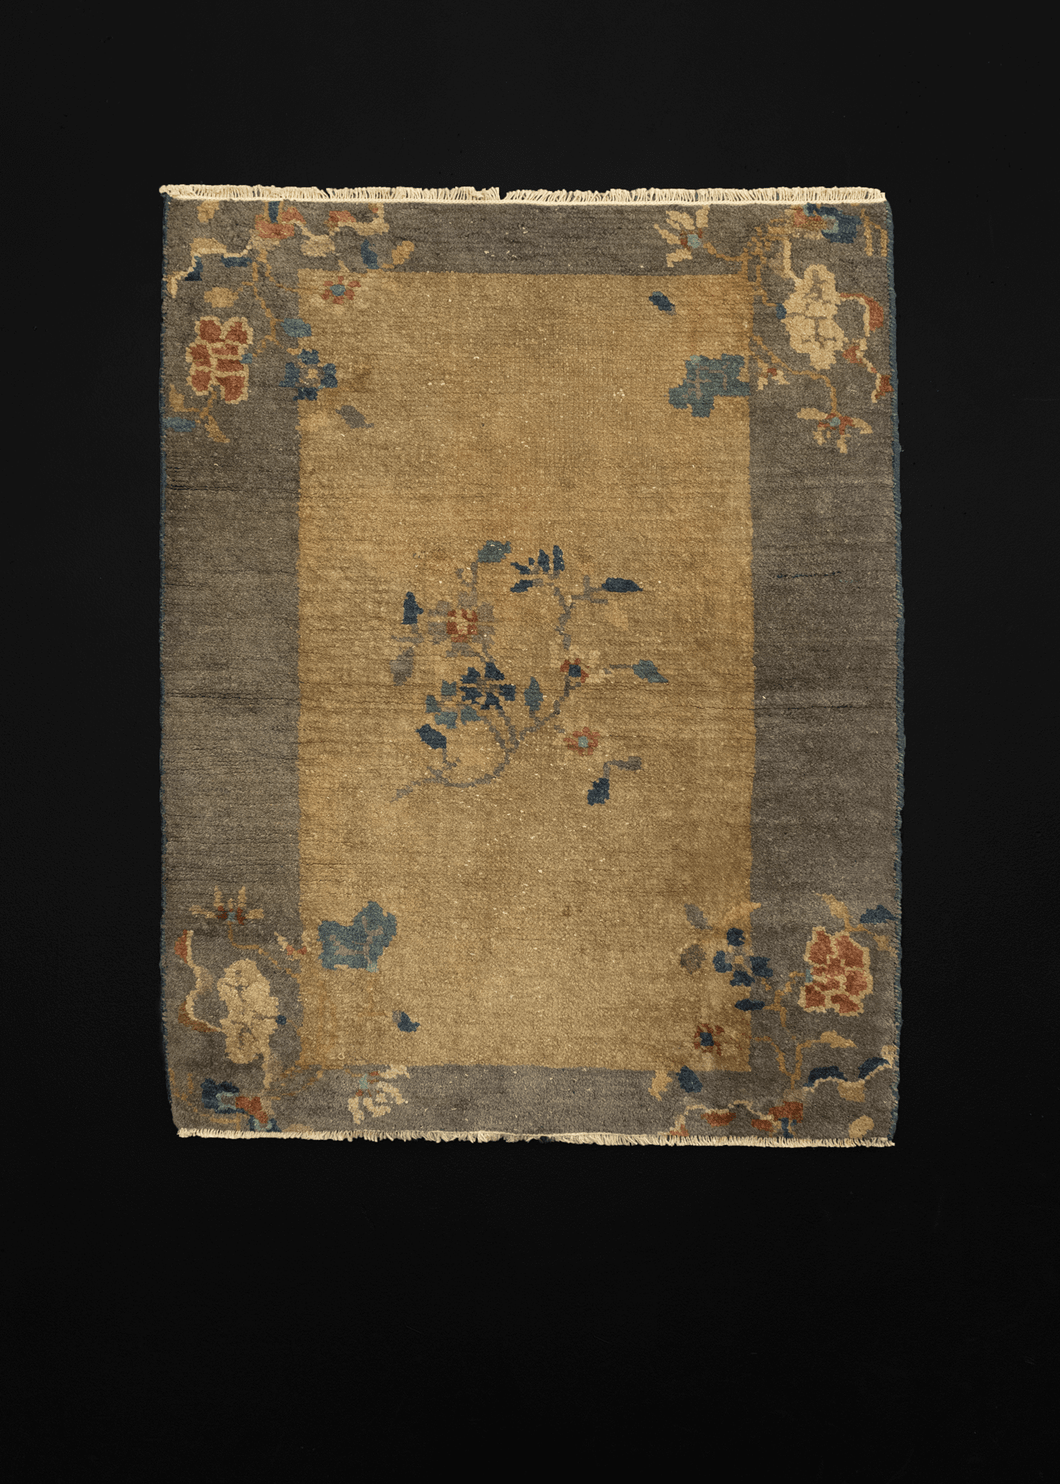 Chinese deco rug with a tan-grey field and silver grey border with floral sprays arranged in the four corners of the rug and in the center of the field.